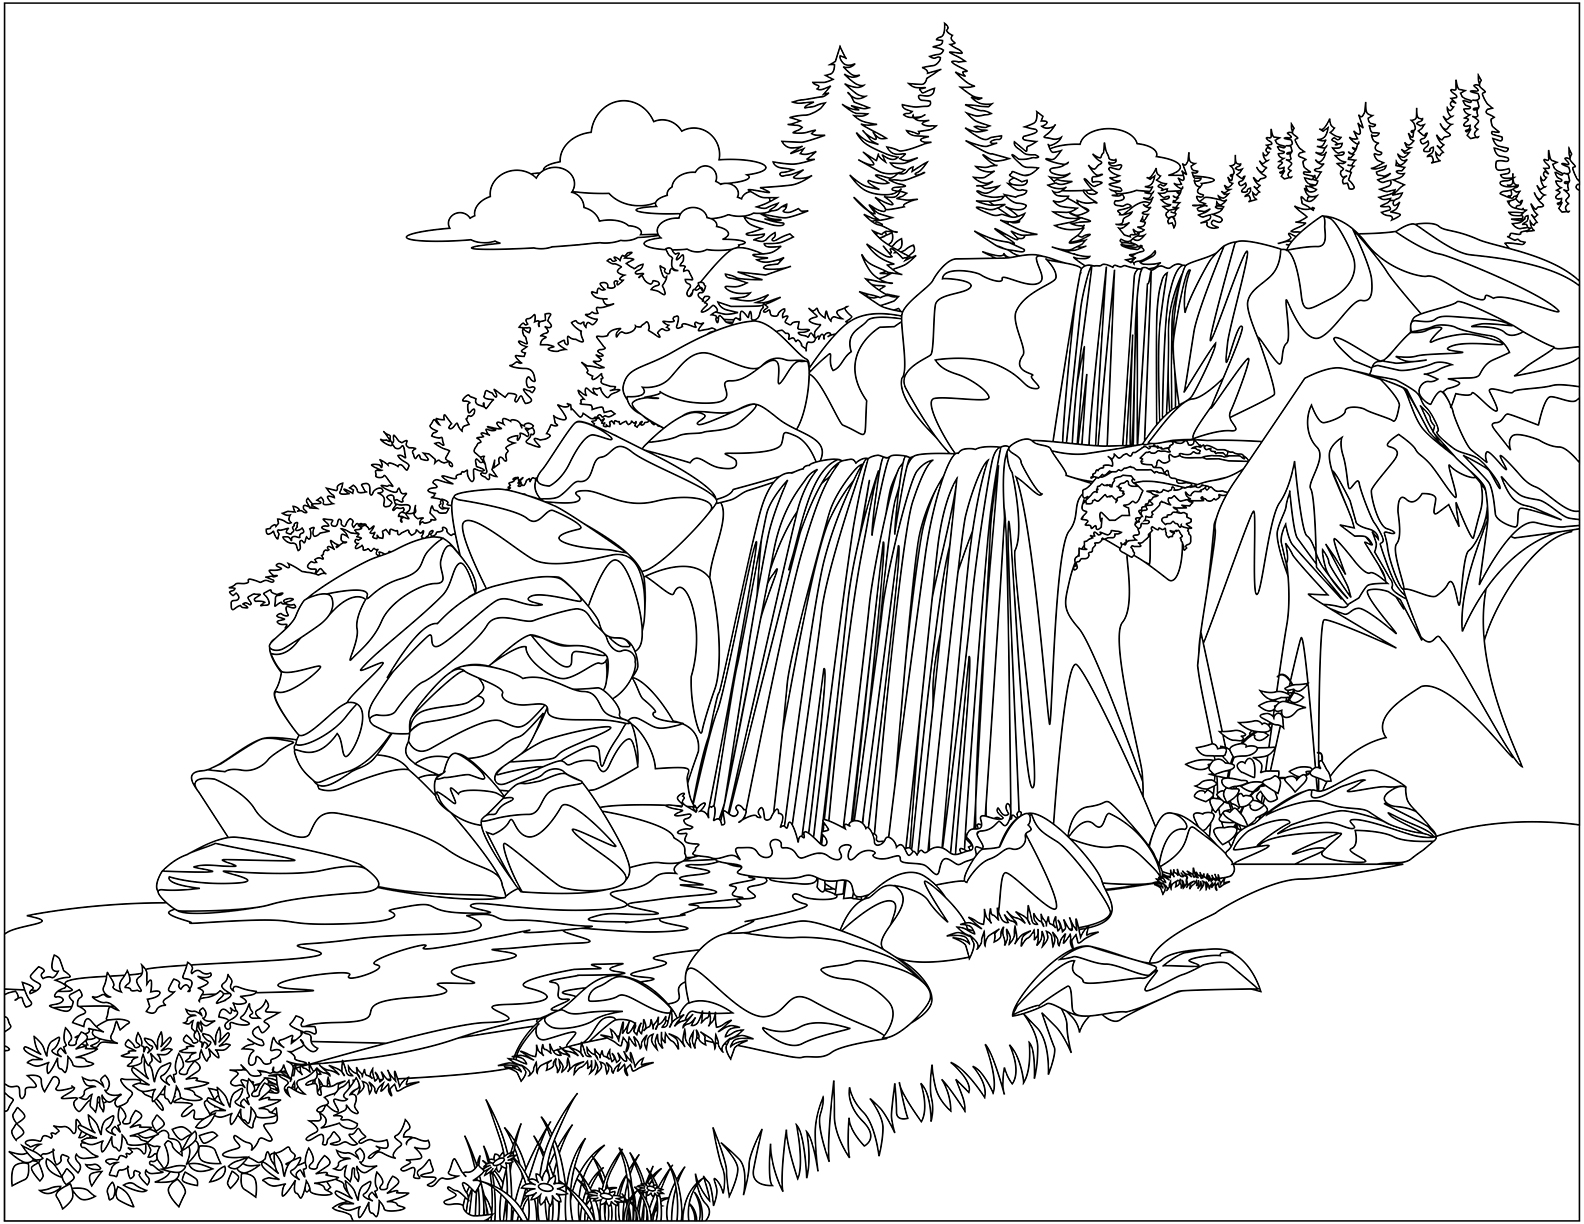 coloring with water water fall coloring pages learny kids with coloring water